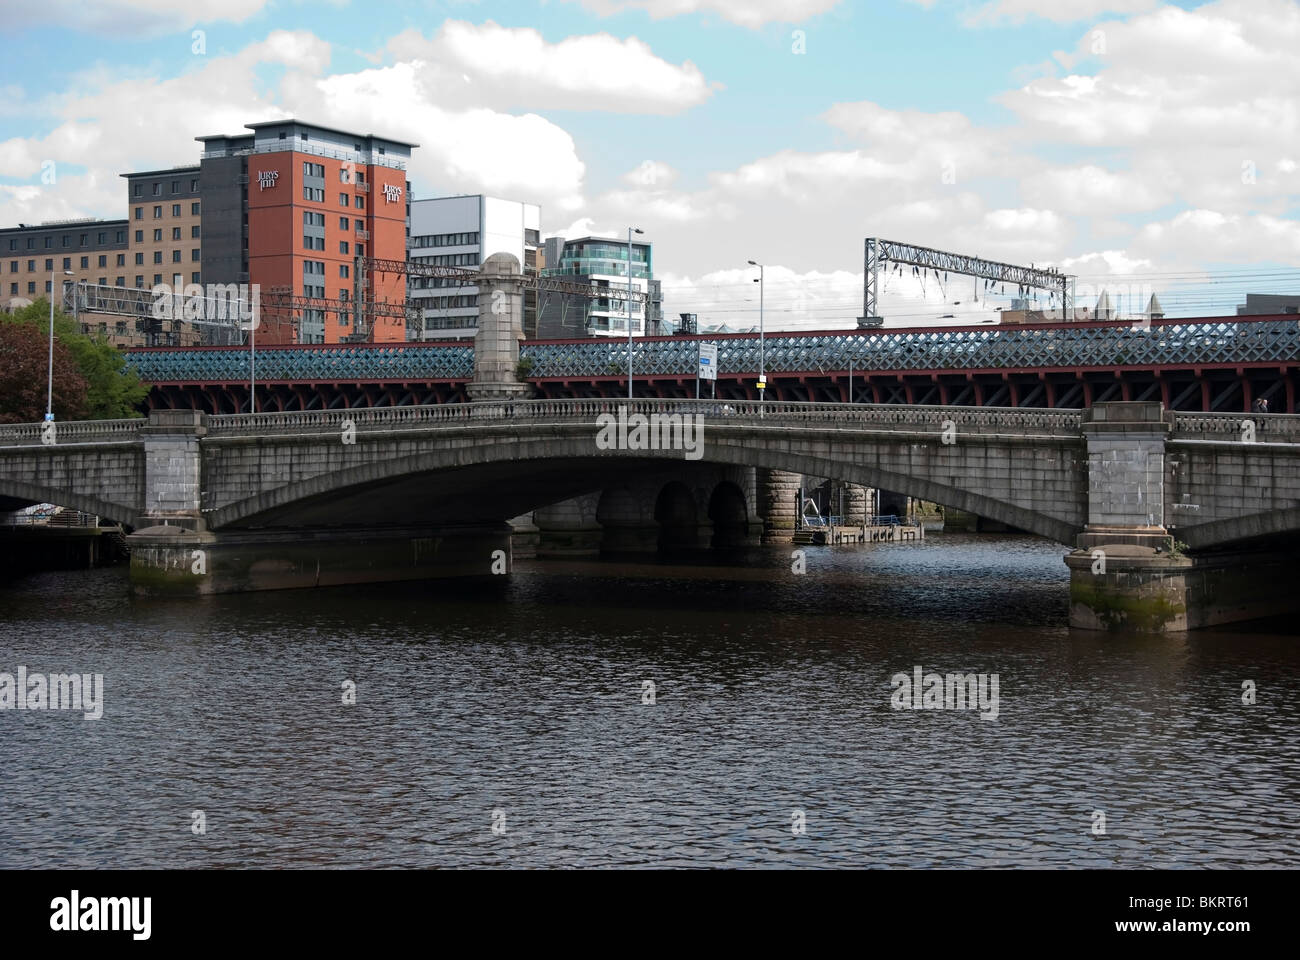 King George V & Caledonian Railway Bridges over River Clyde Glasgow City Centre - Stock Image